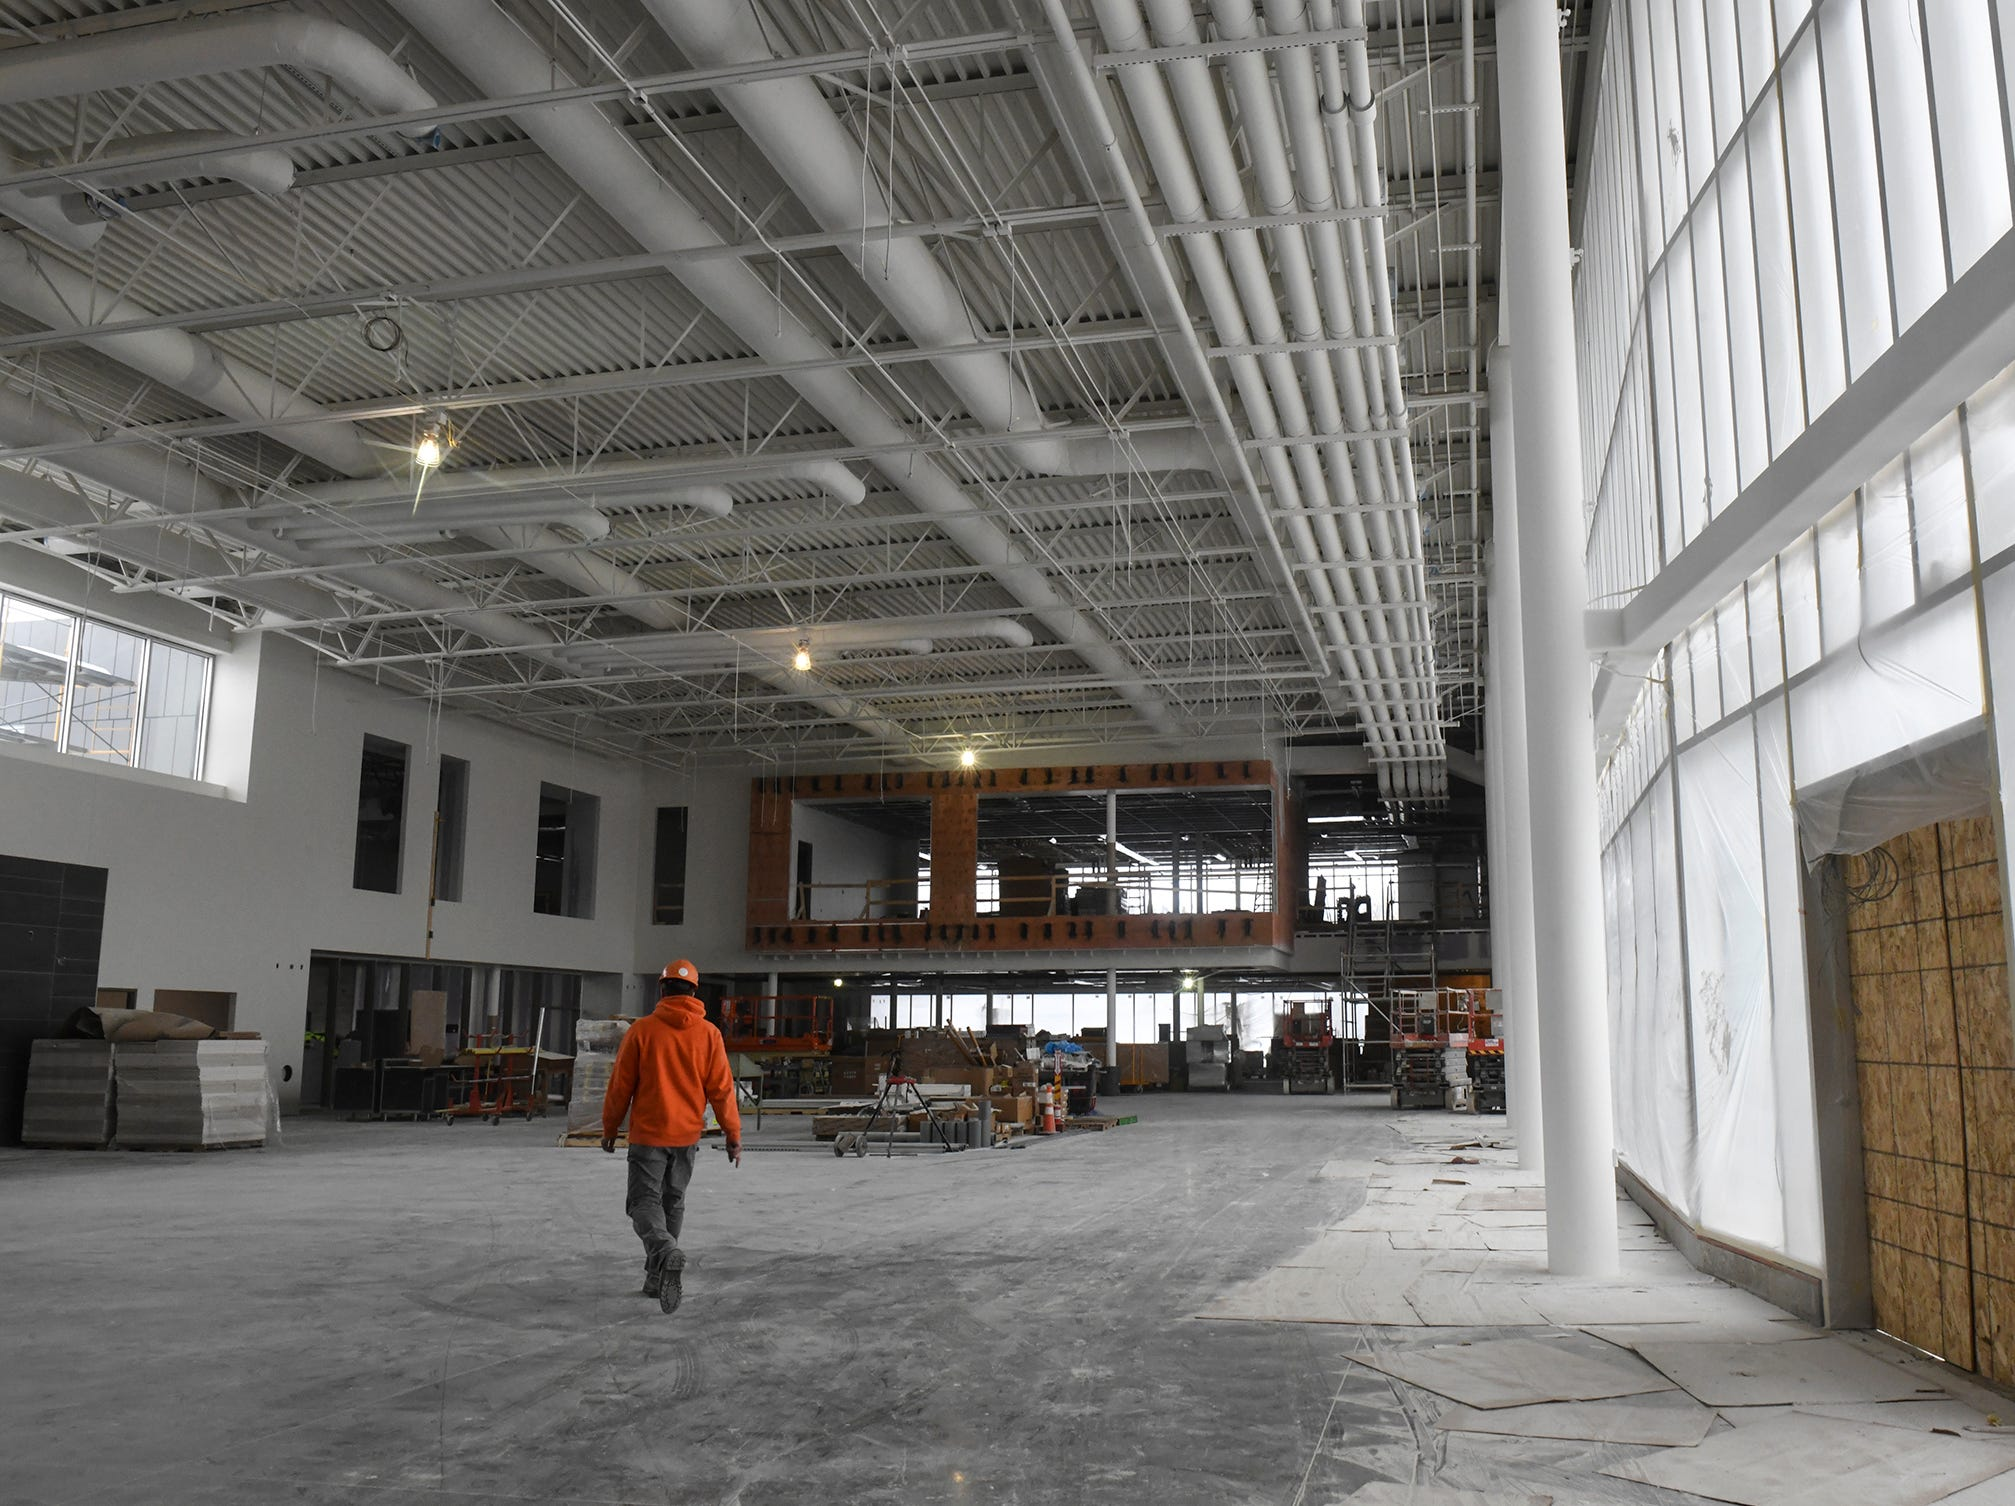 Large windows flood the commons area the new Tech High School building under construction Friday, March 15, in St. Cloud.